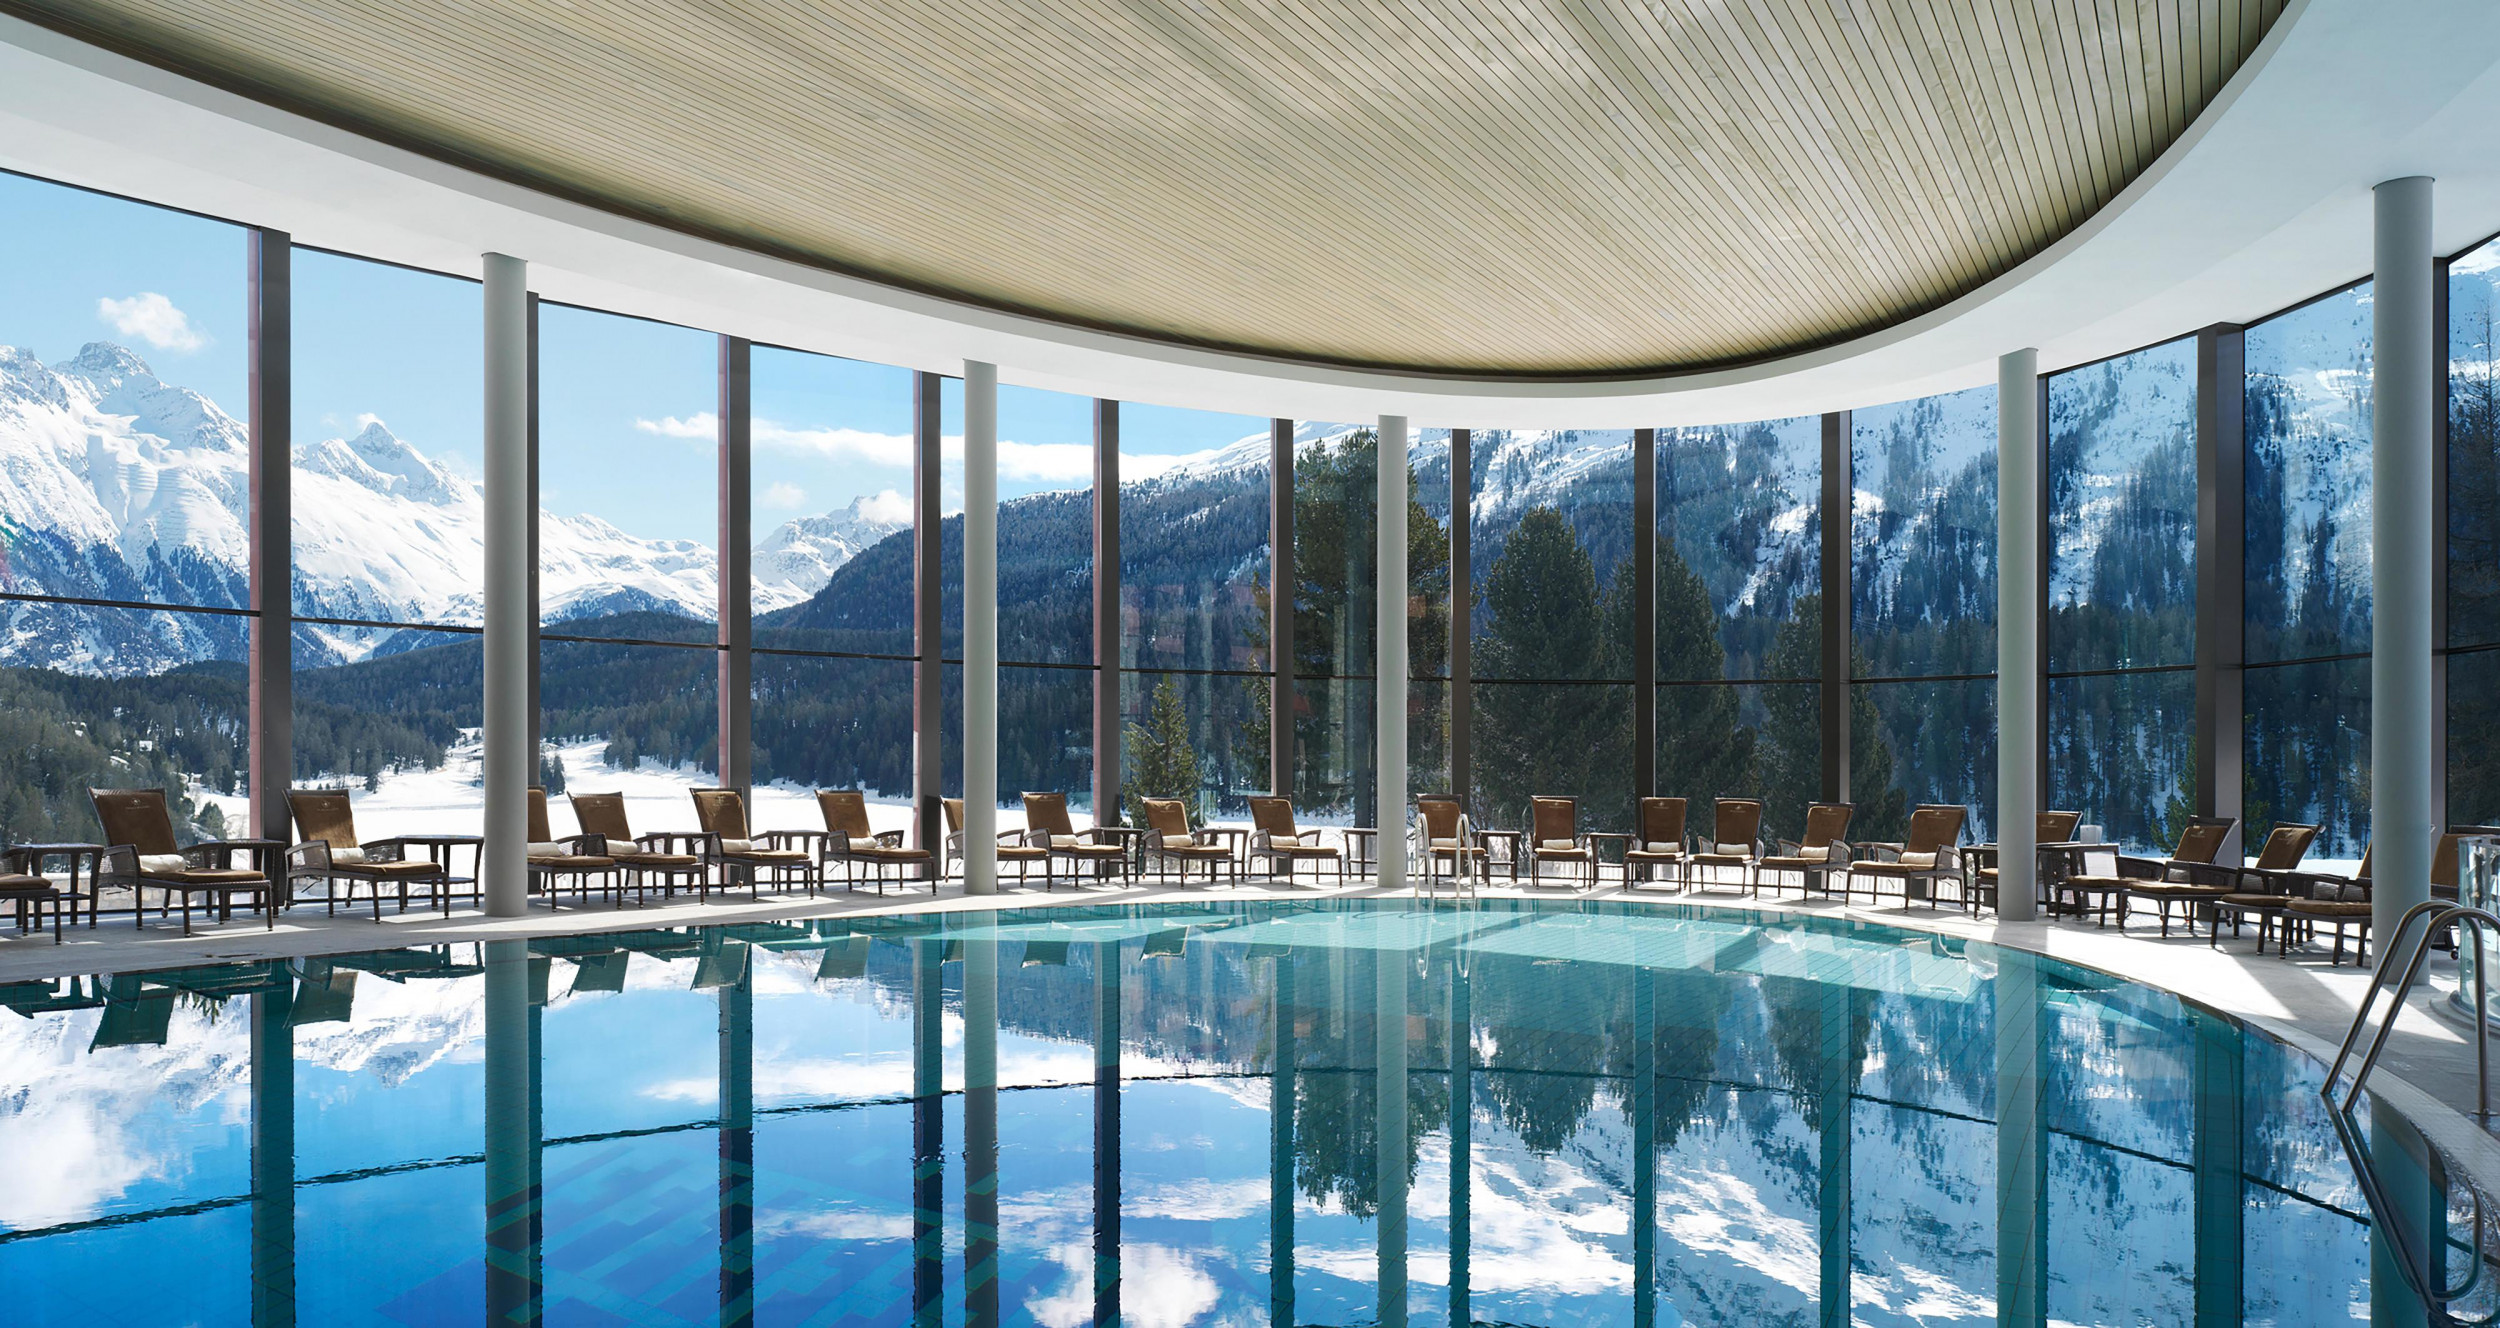 The infinity pool at the exclusive Palace Wellness spa in St. Moritz